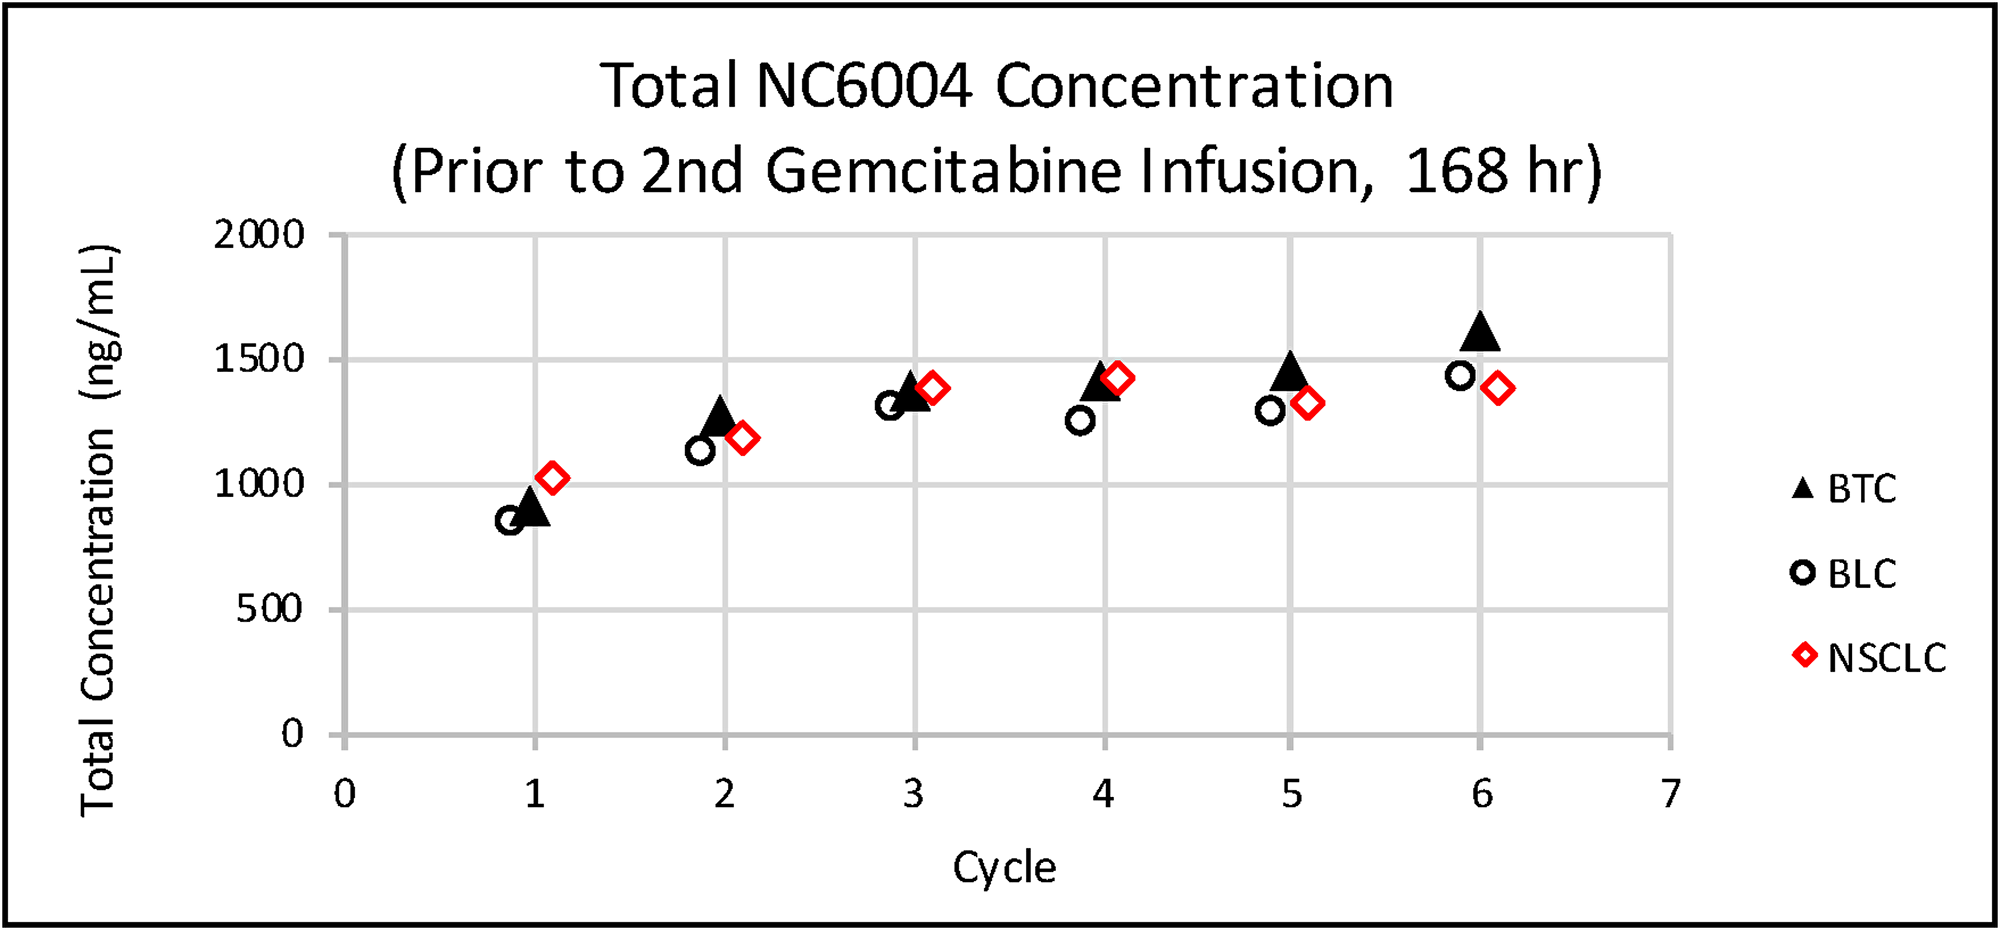 Mean total platinum concentrations prior to the second gemcitabine infusion (168 h) in each cycle in patients with various tumor types.